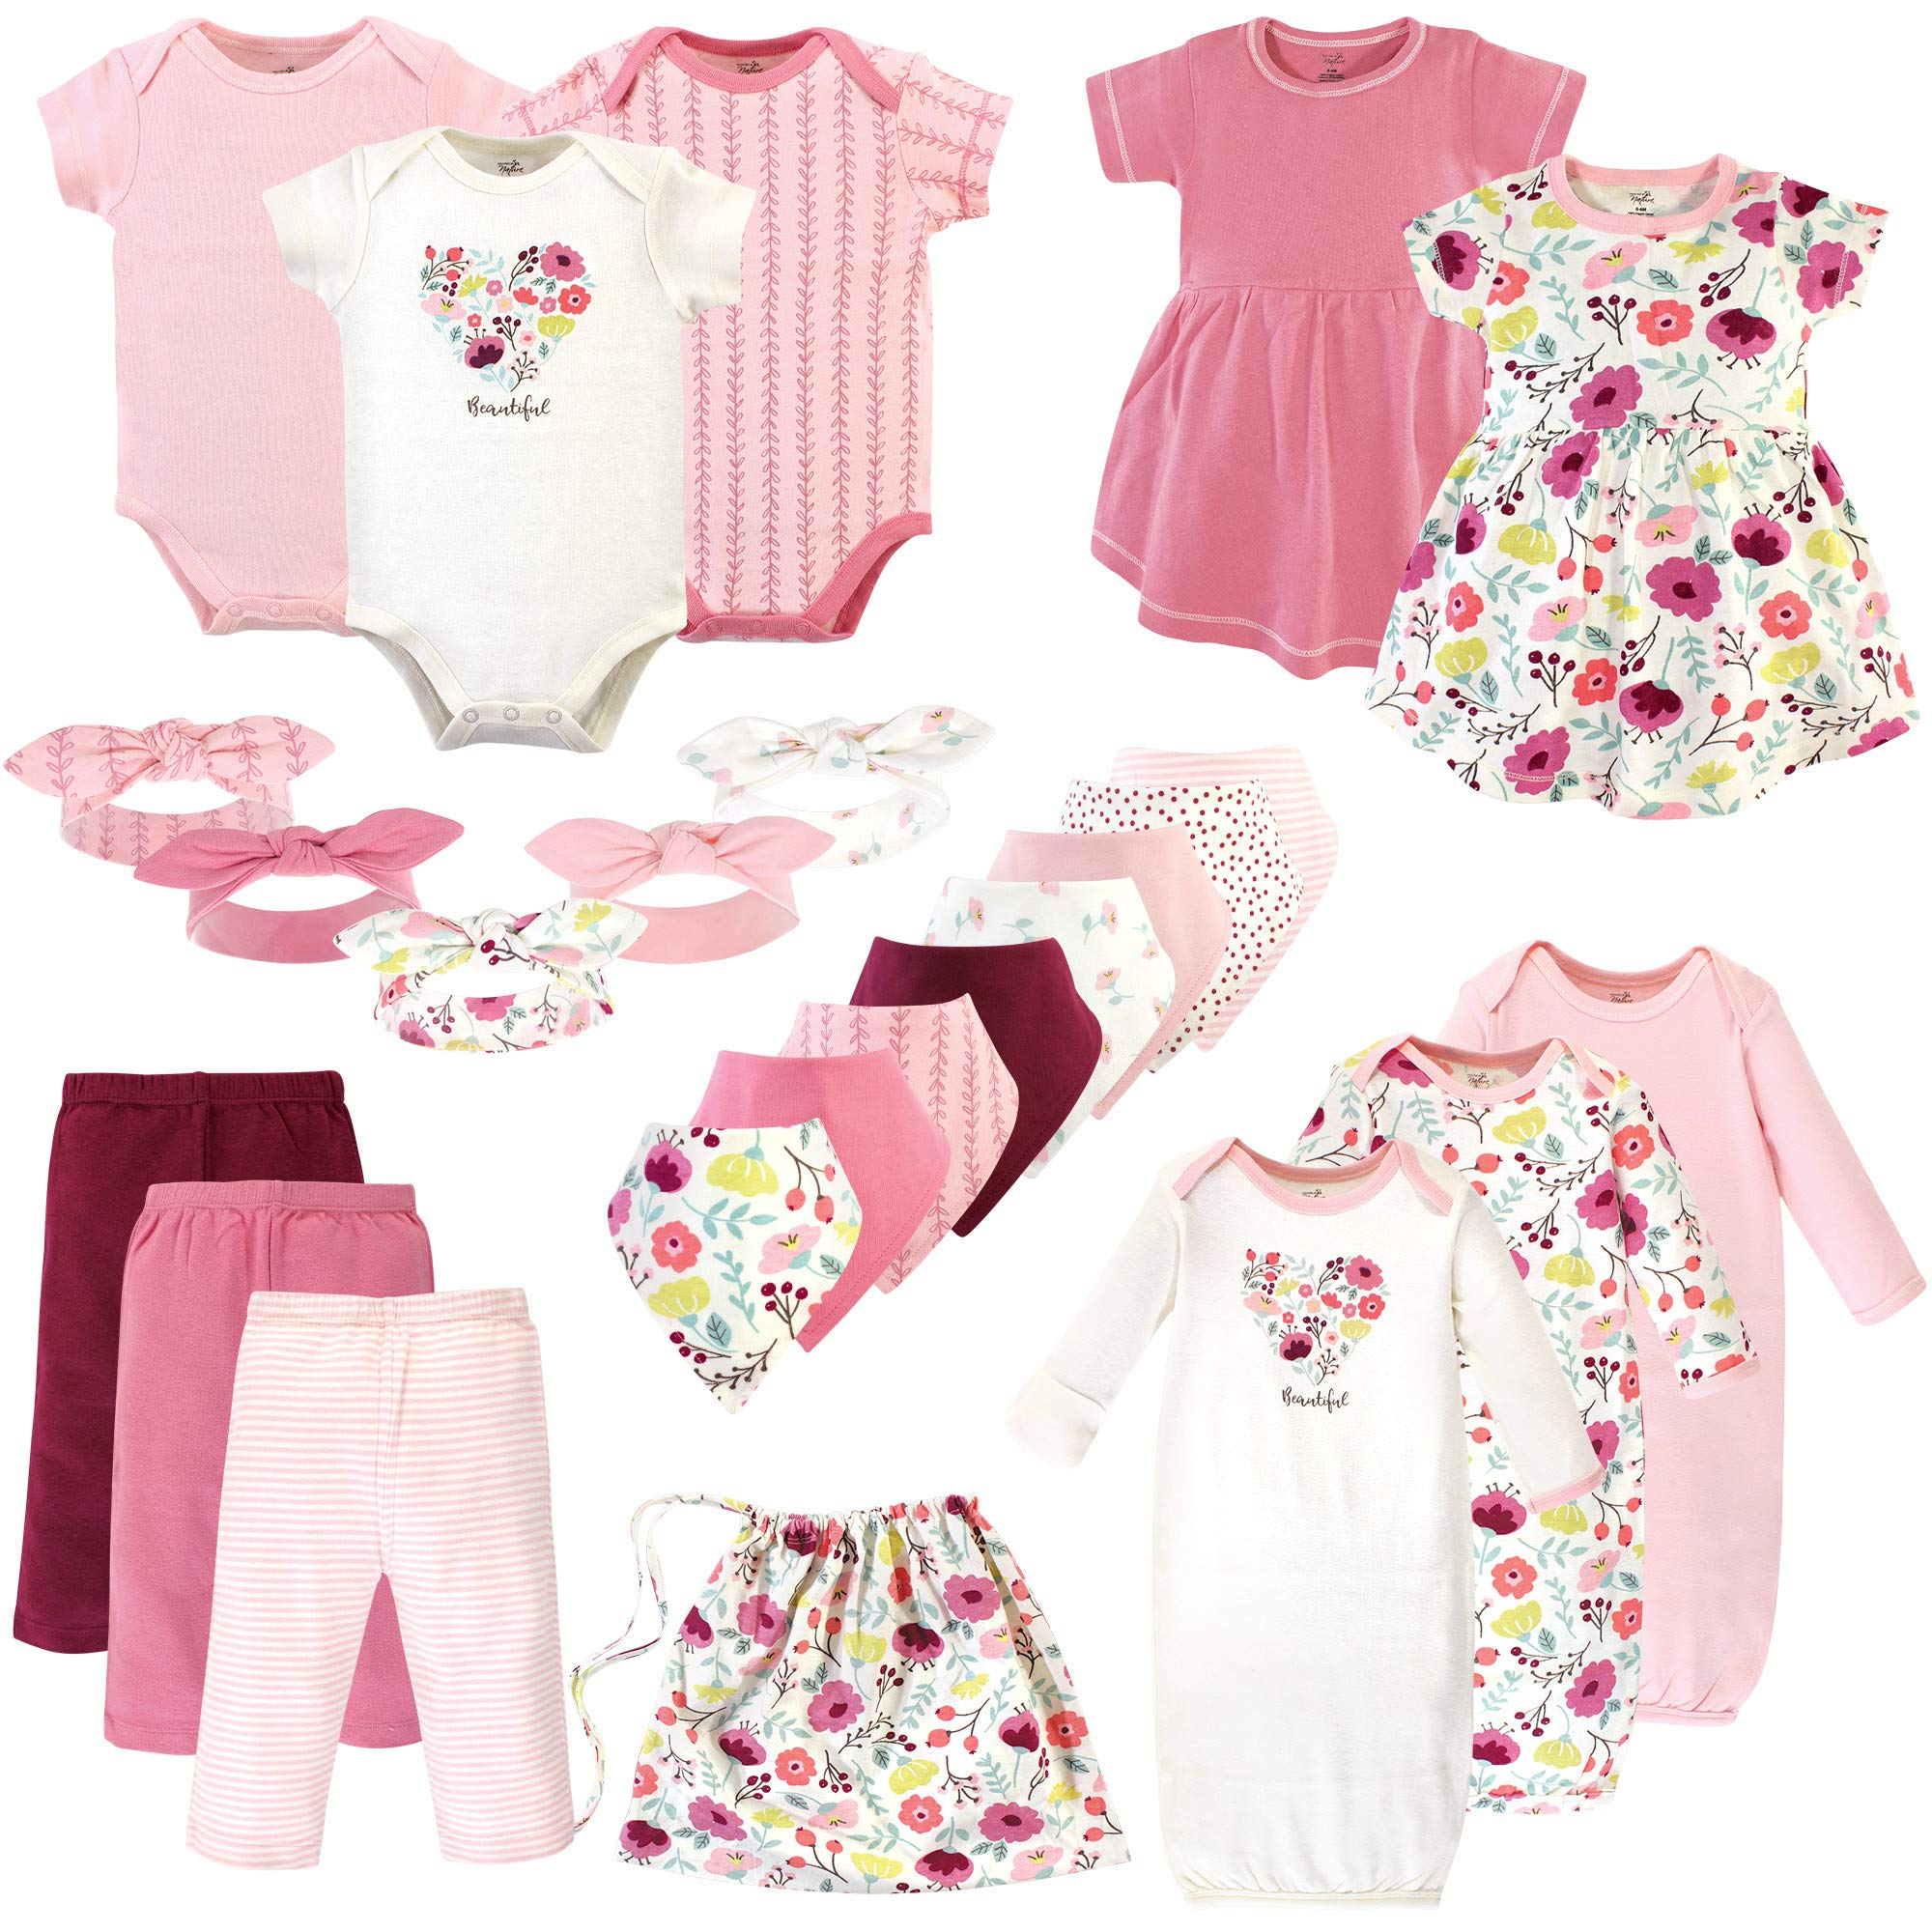 Touched by Nature Unisex Baby Girls Layette Giftset Bundle with Laundry Bag, Botanical Pack, 0-6 Months (6M) by Touched by Nature